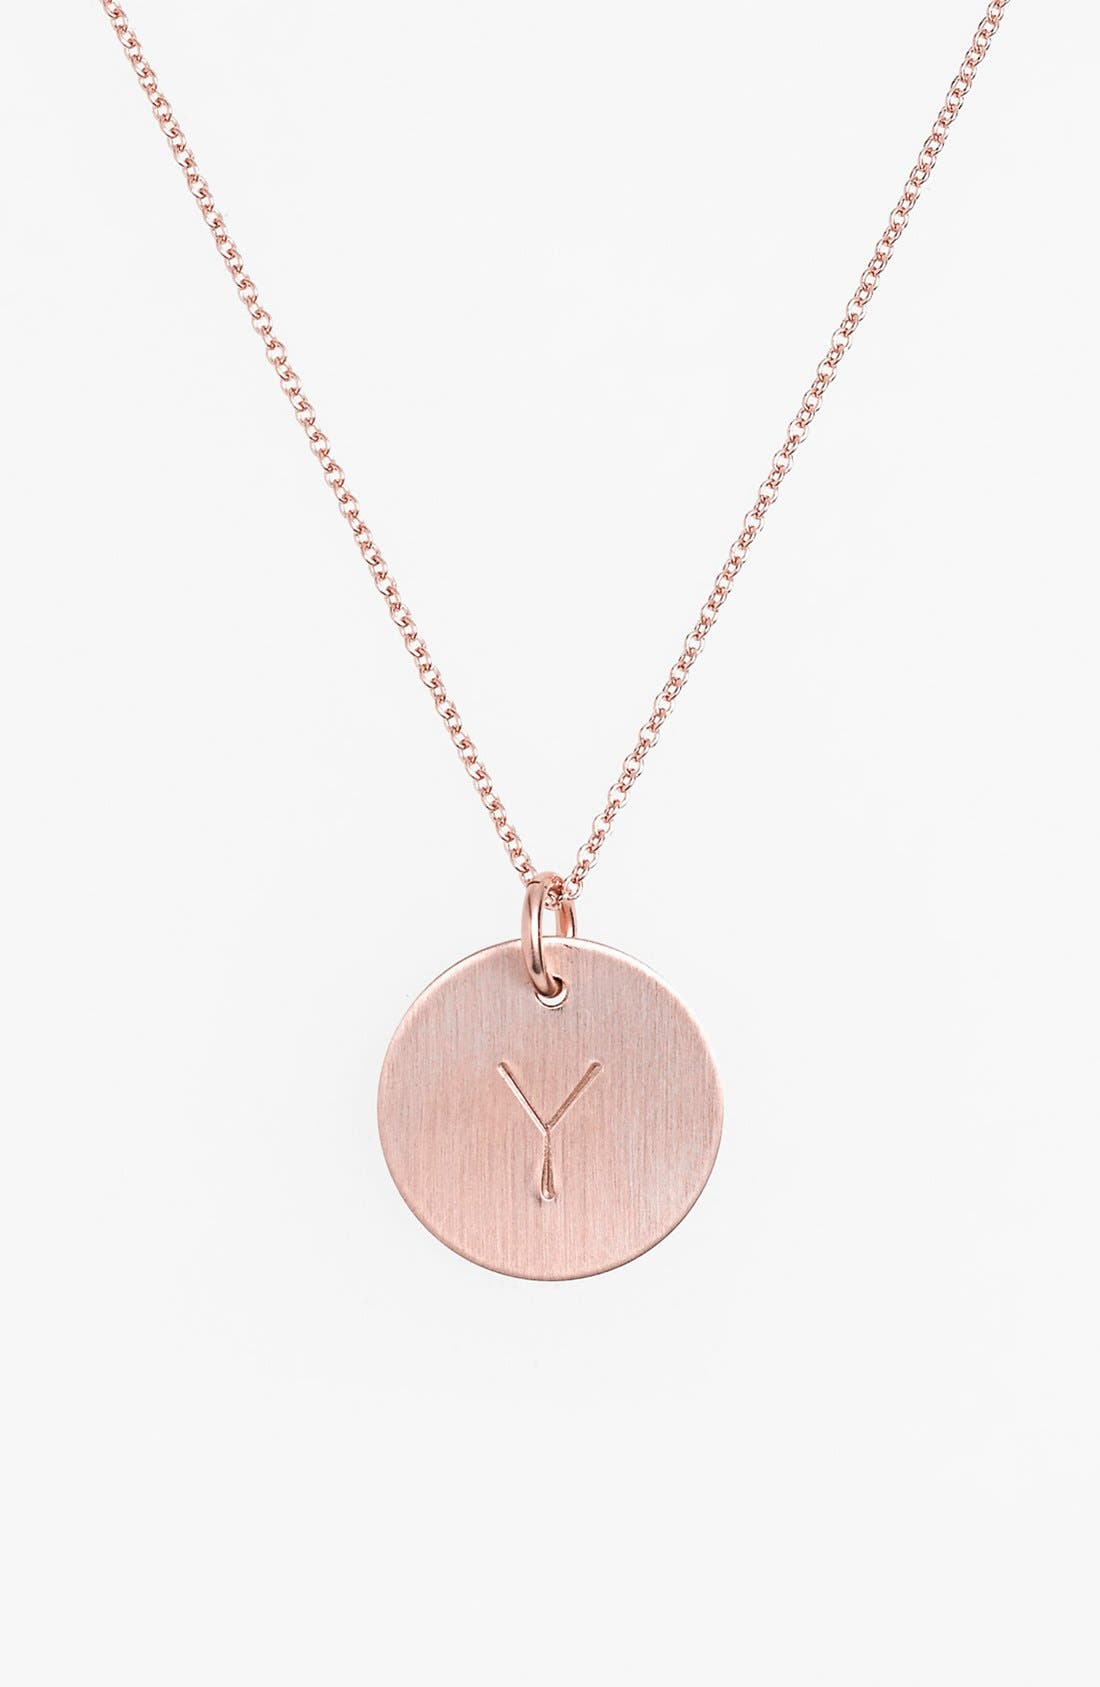 14k-Rose Gold Fill Initial Disc Necklace,                             Main thumbnail 25, color,